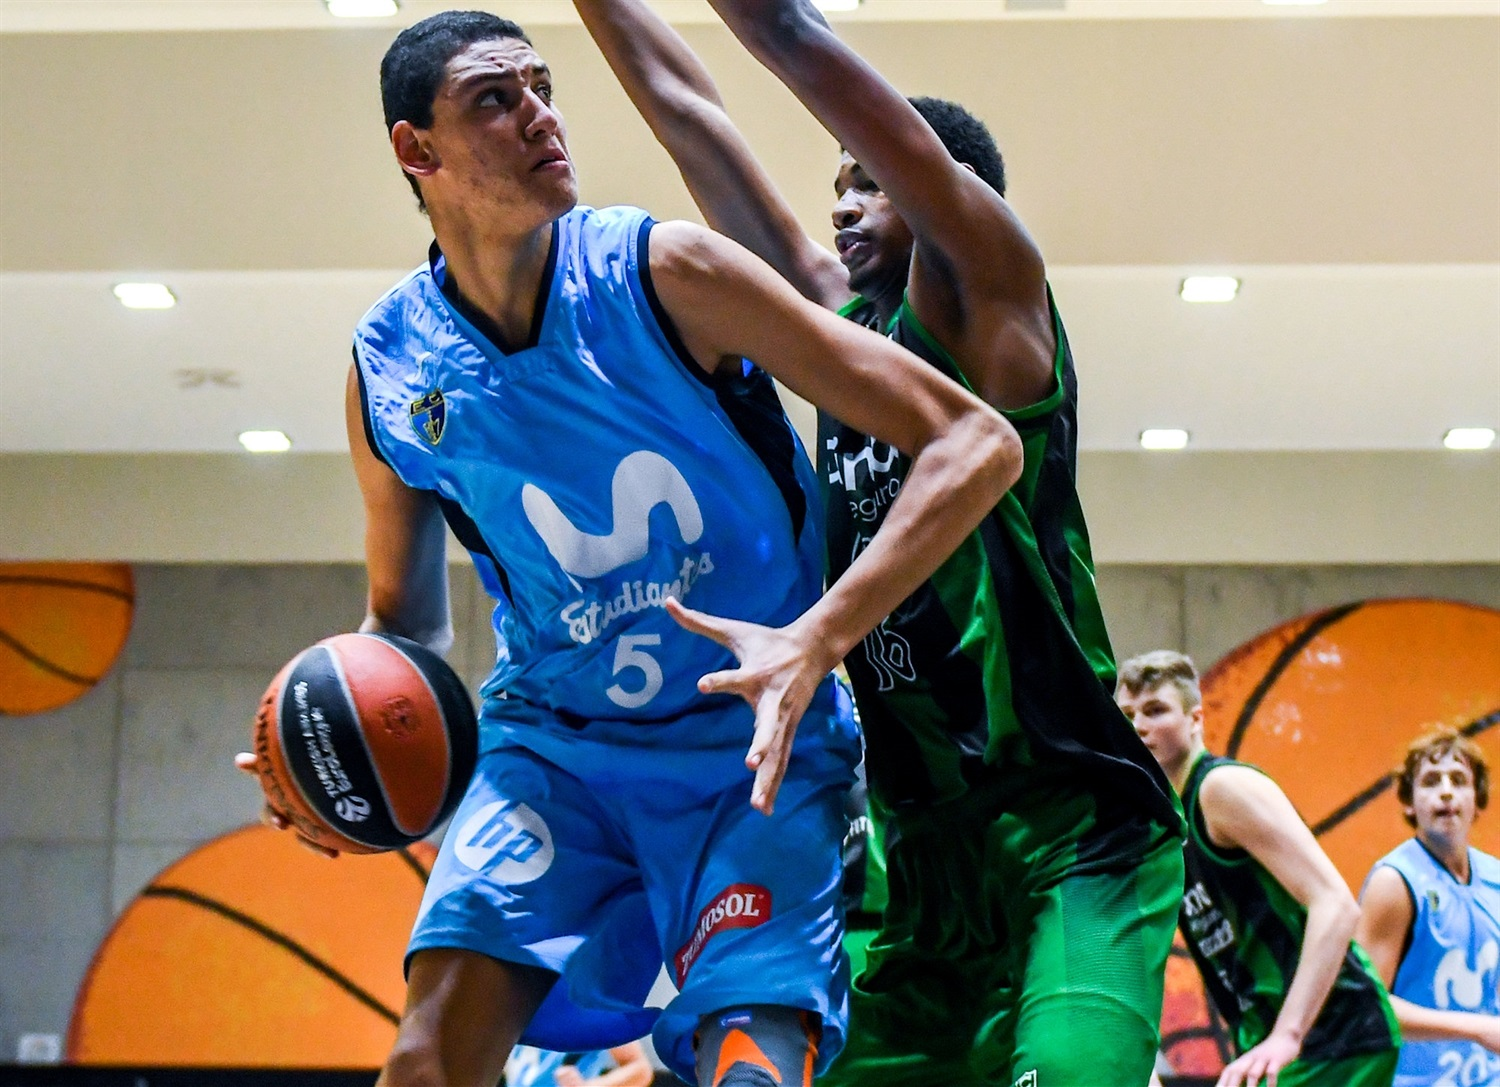 Gilad Levy - U18 Movistar Estudiantes Madrid (photo Miguel Angel Polo - Valencia) - JT18